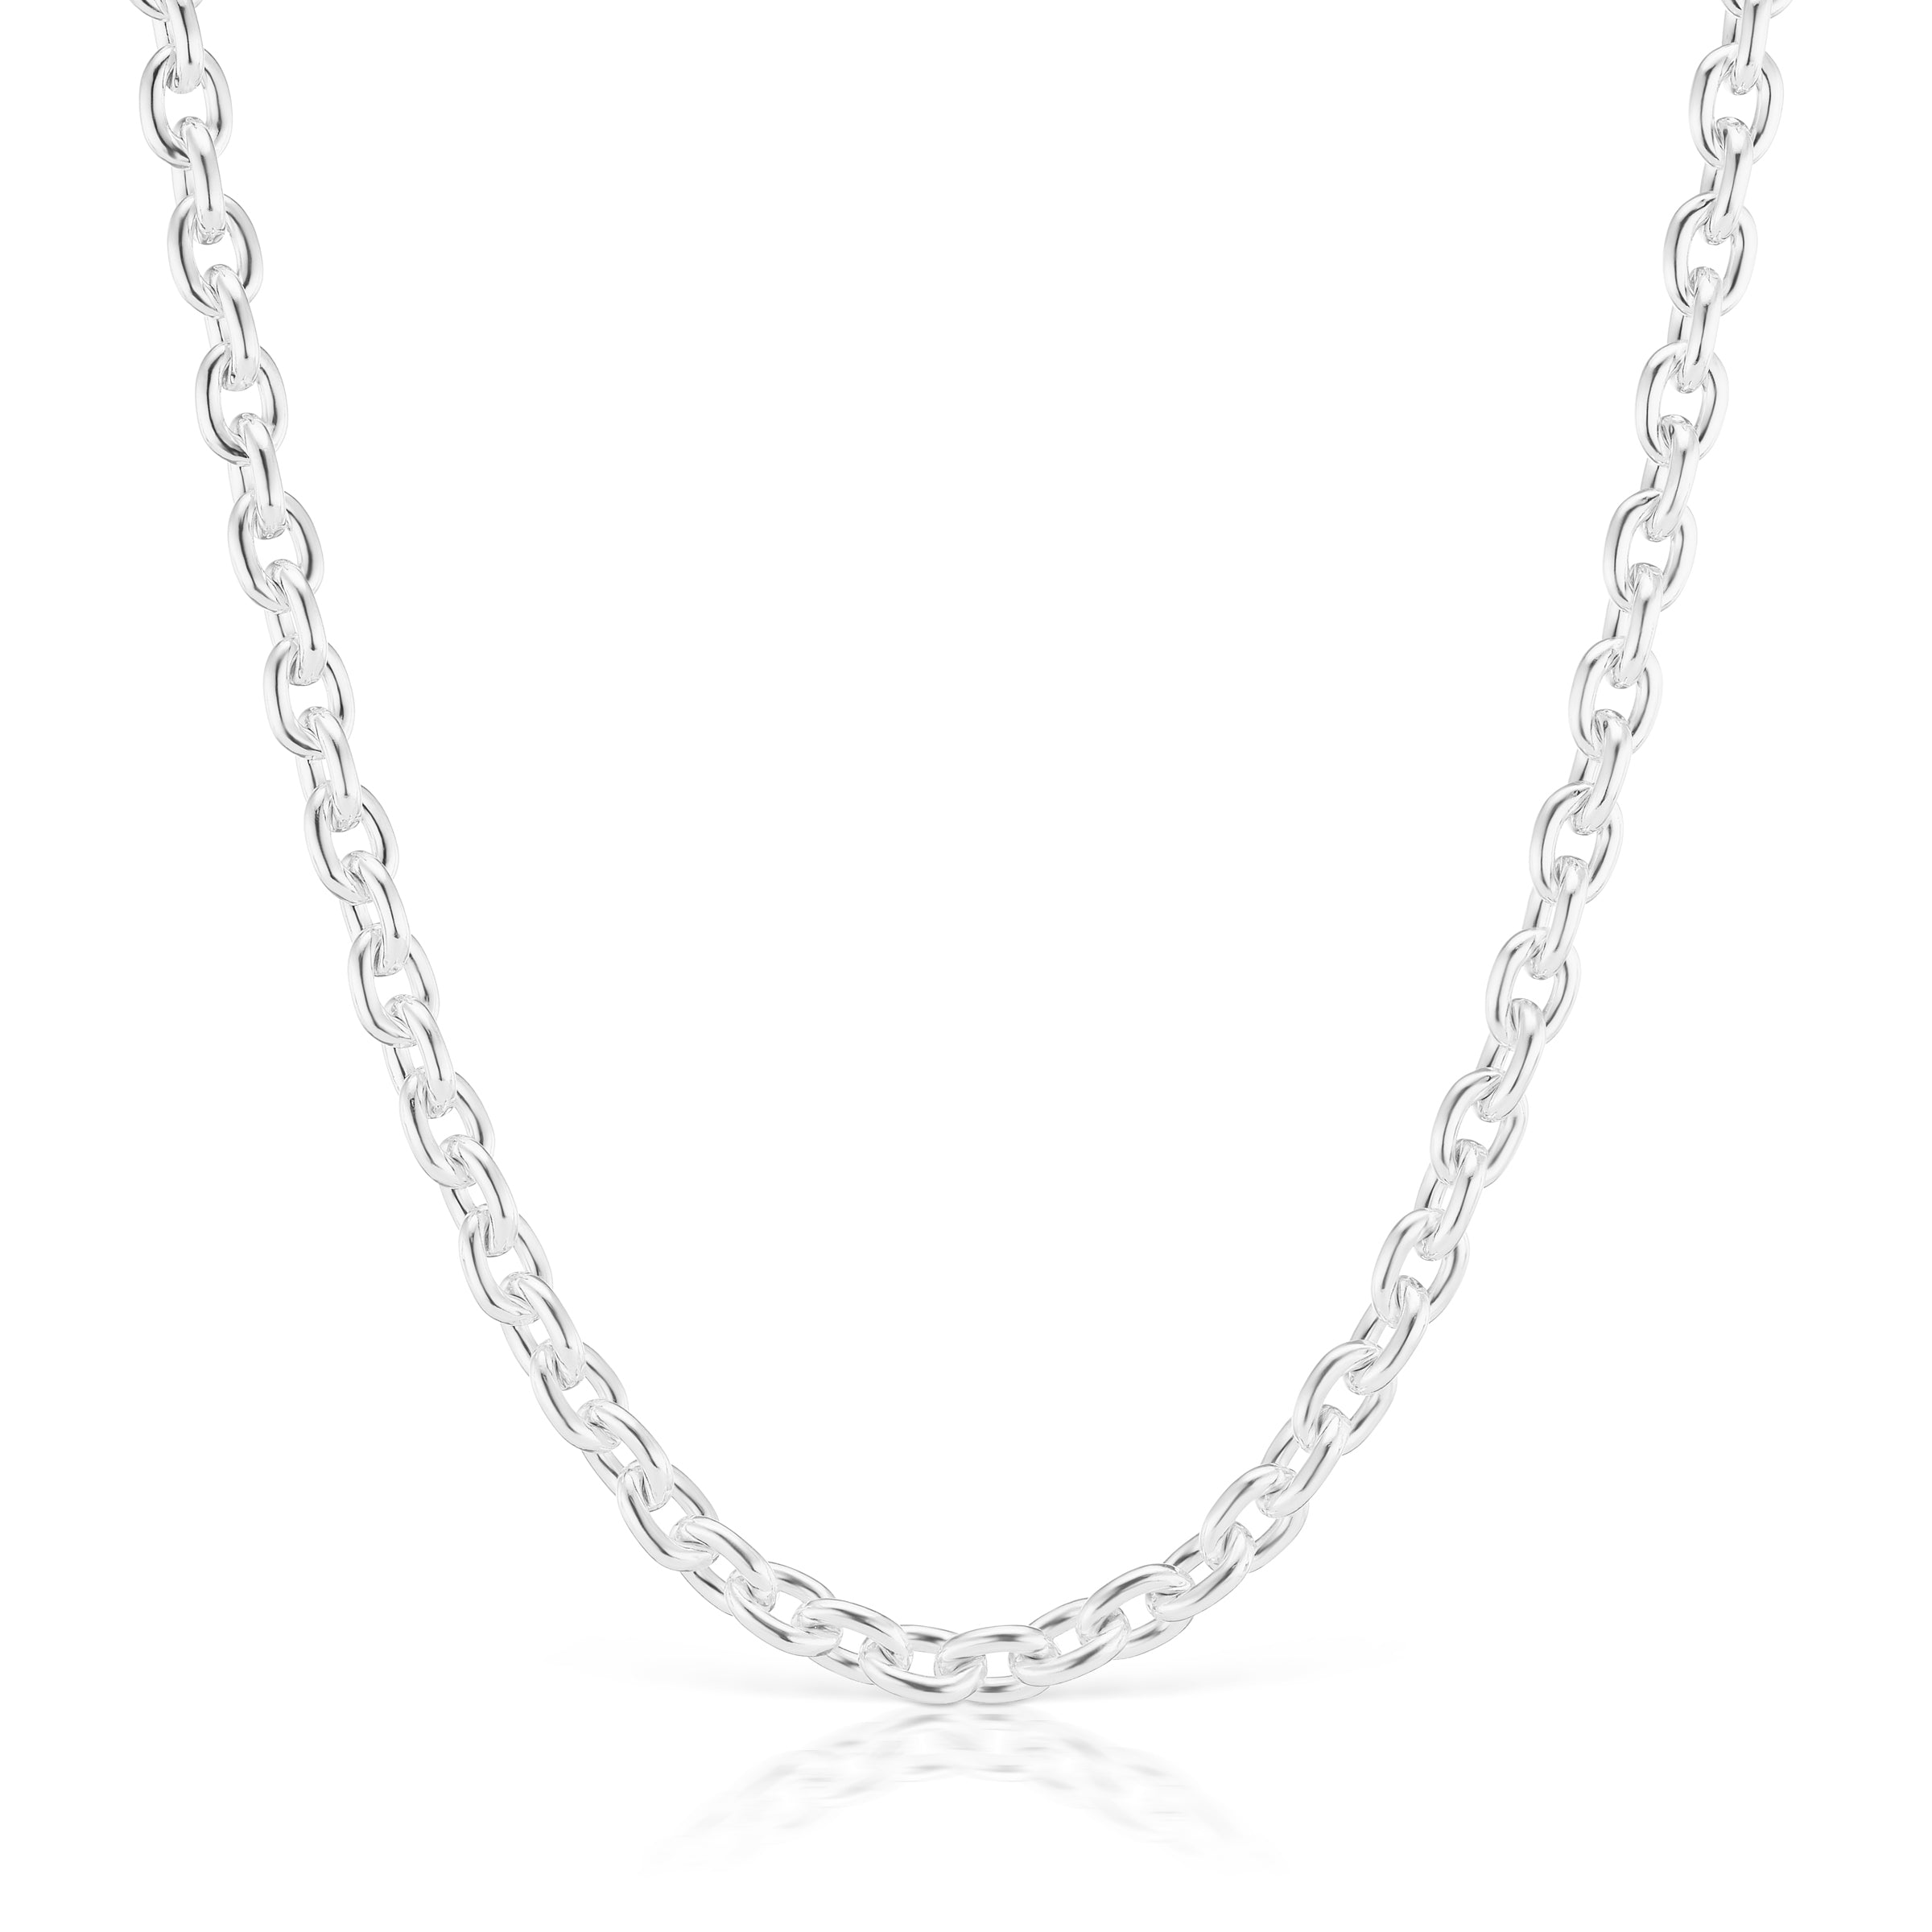 The Silver Ludlow Necklace